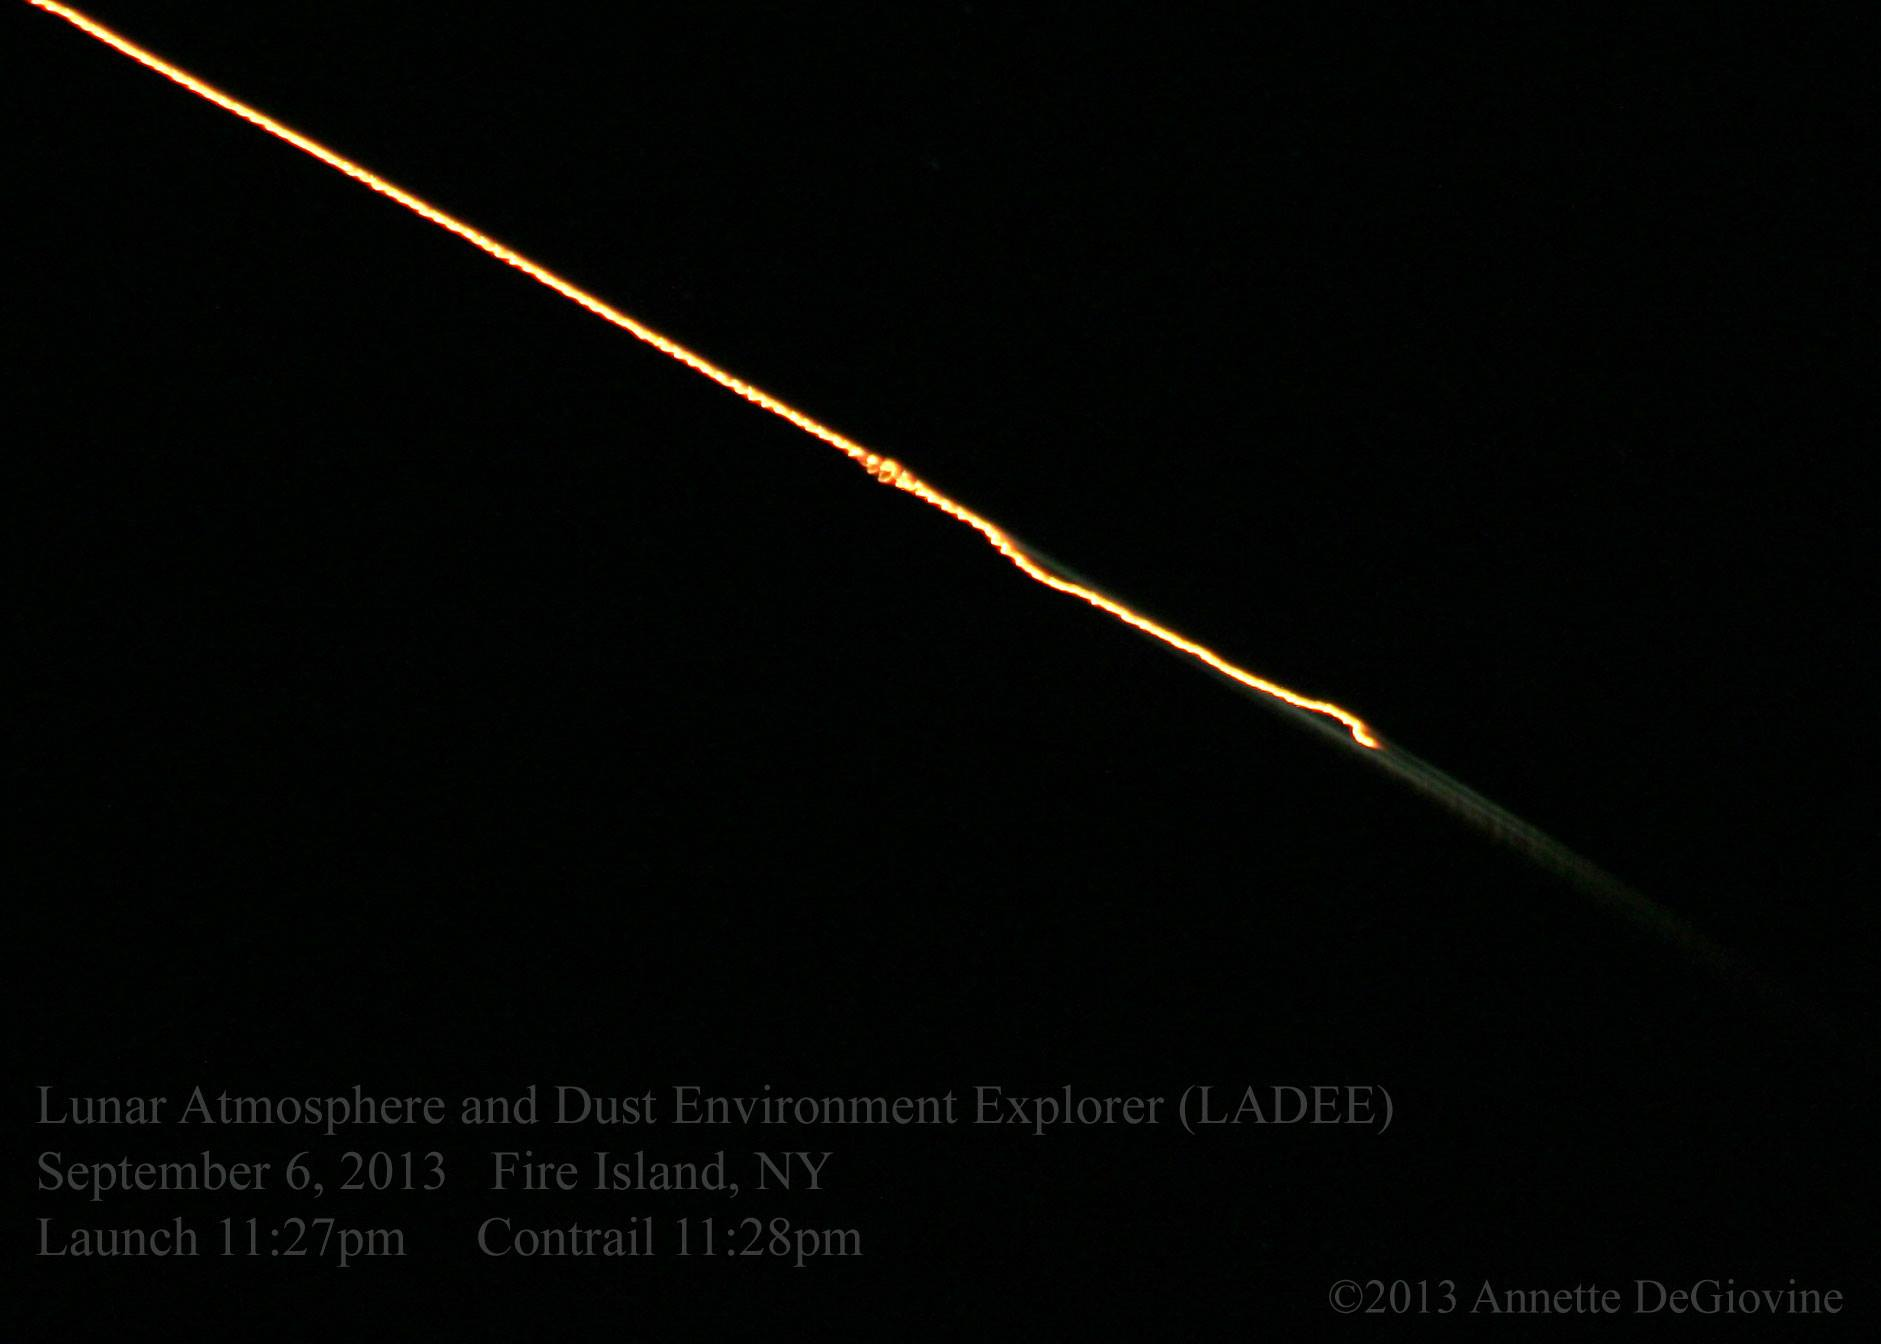 LADEE captured one minute after lift off, as seen from Long Island by Annette DeGiovine. Thank you, Annette!